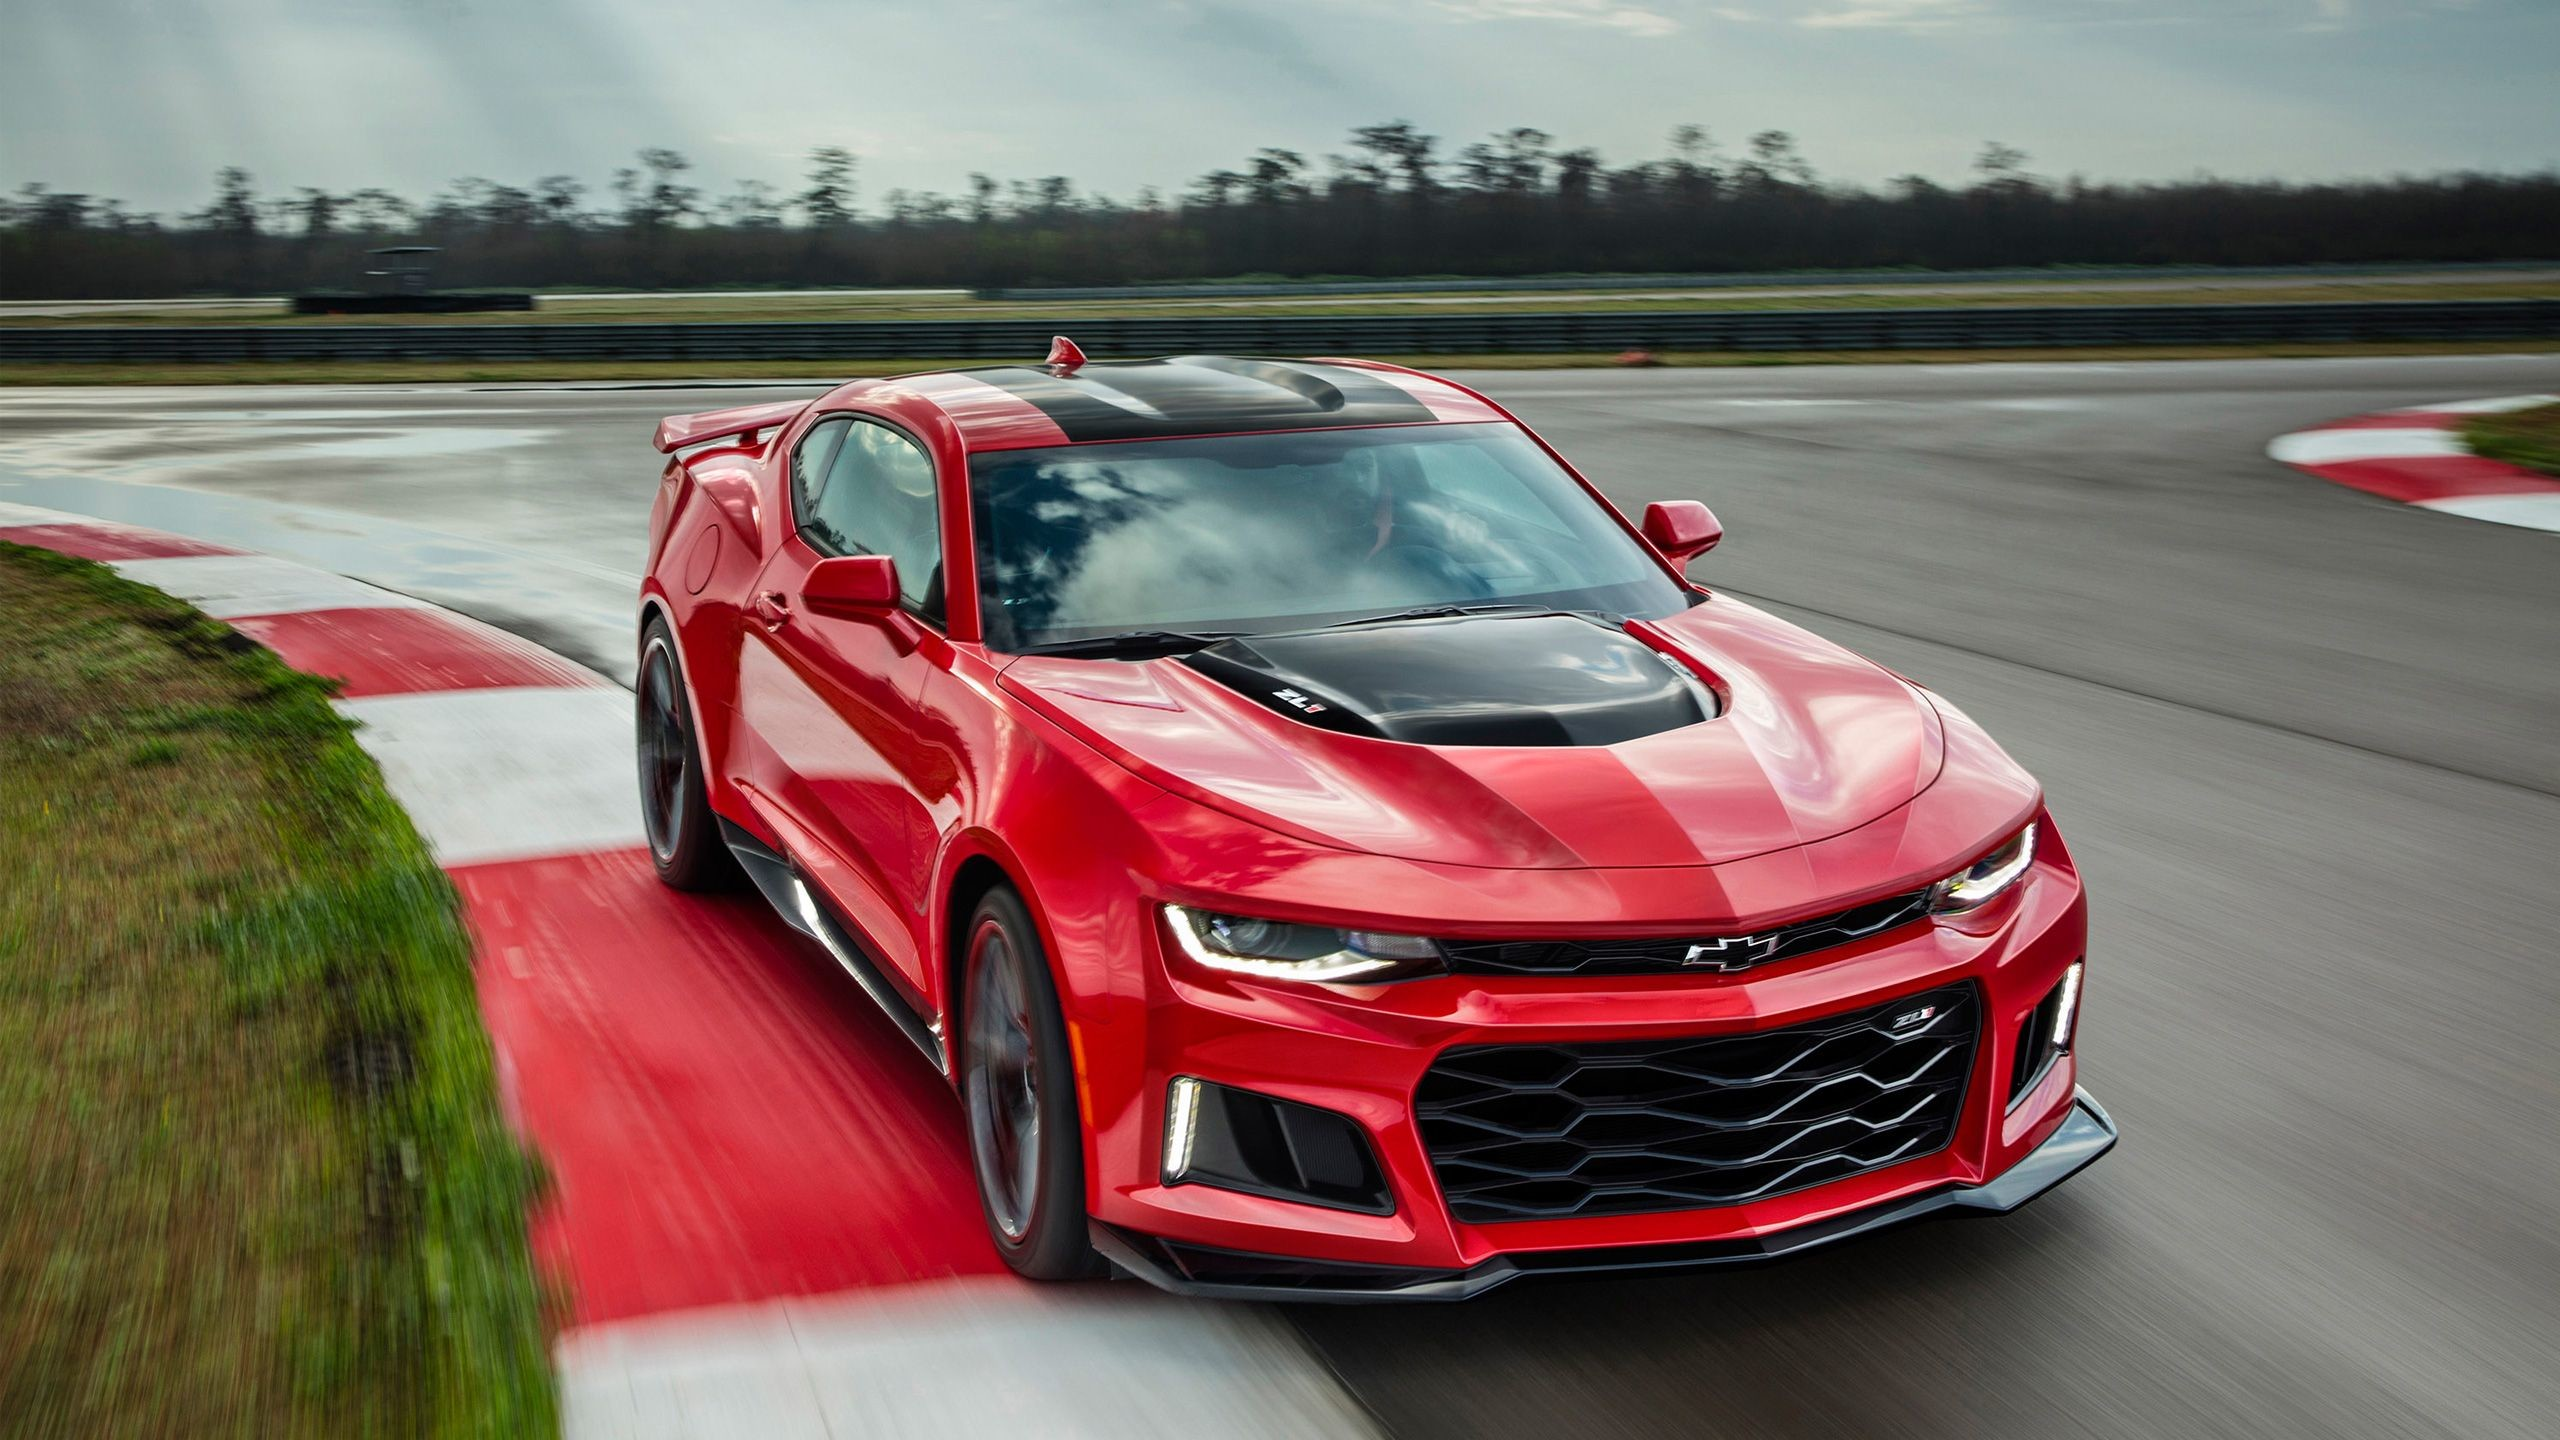 2560x1440 2017 Chevrolet Camaro ZL1 Wallpaper | HD Car Wallpapers